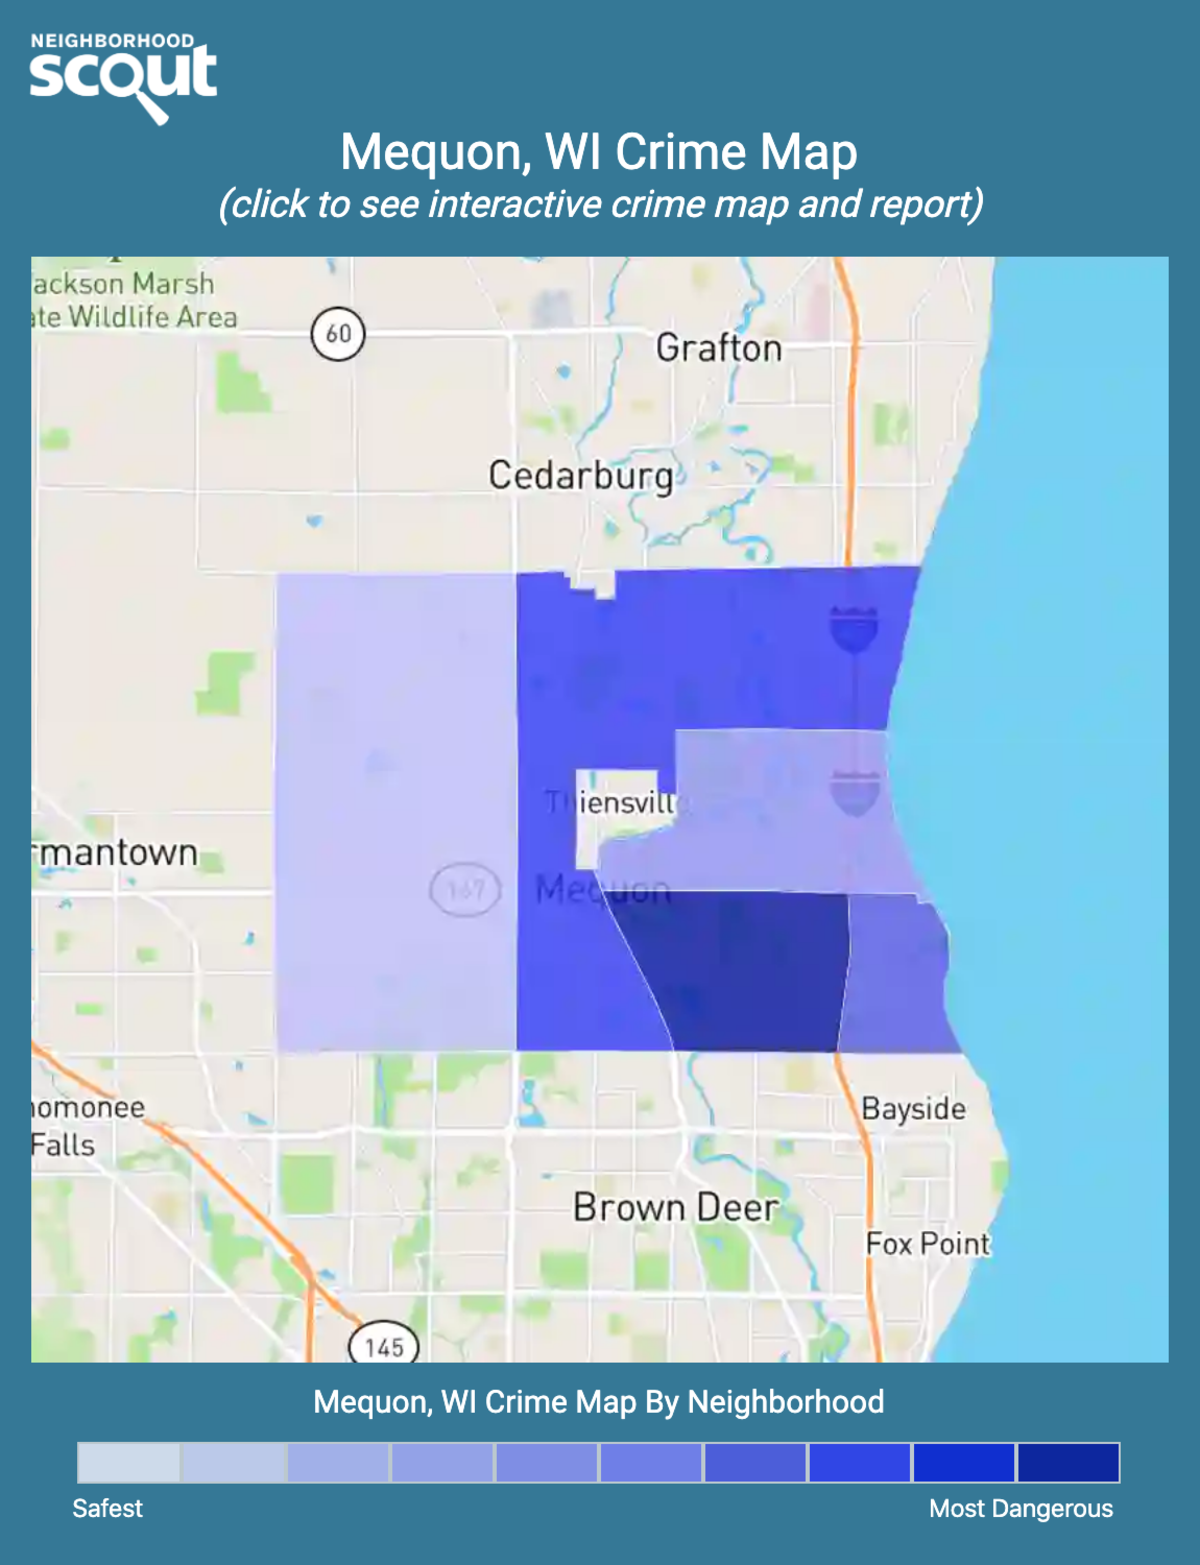 Mequon, Wisconsin crime map